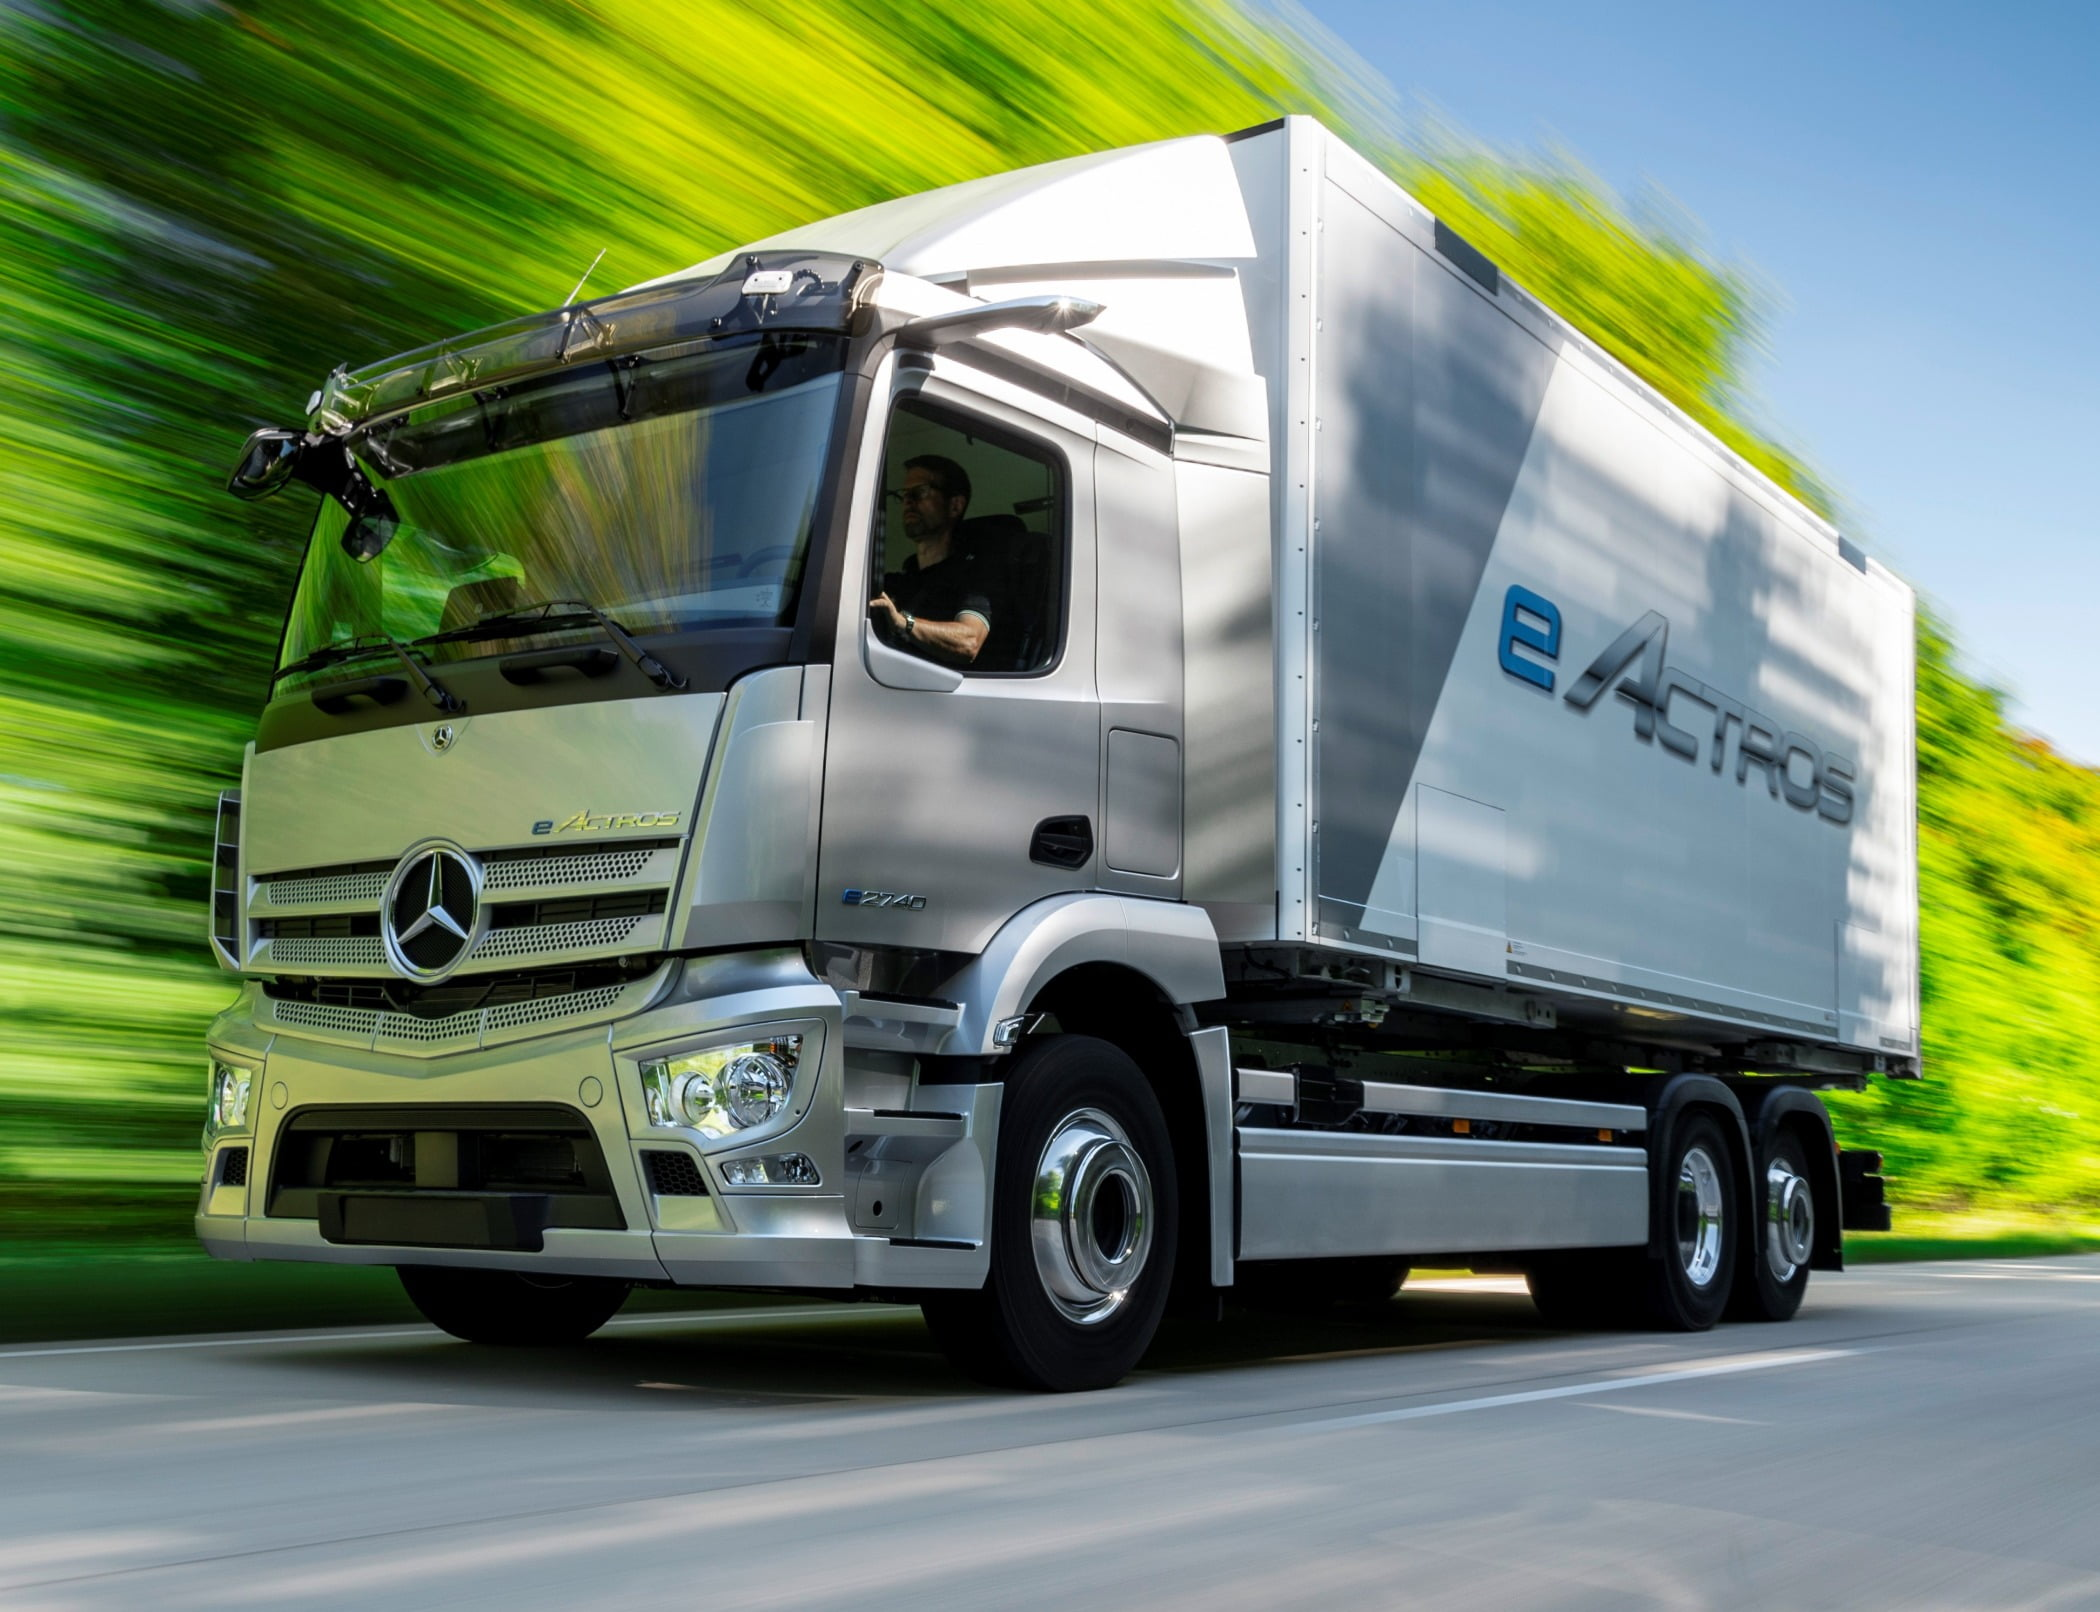 Many electric trucks, such as the Mercedes-Benz eActros, models will be assembled alongside vehicles with ICE engines and power trains.